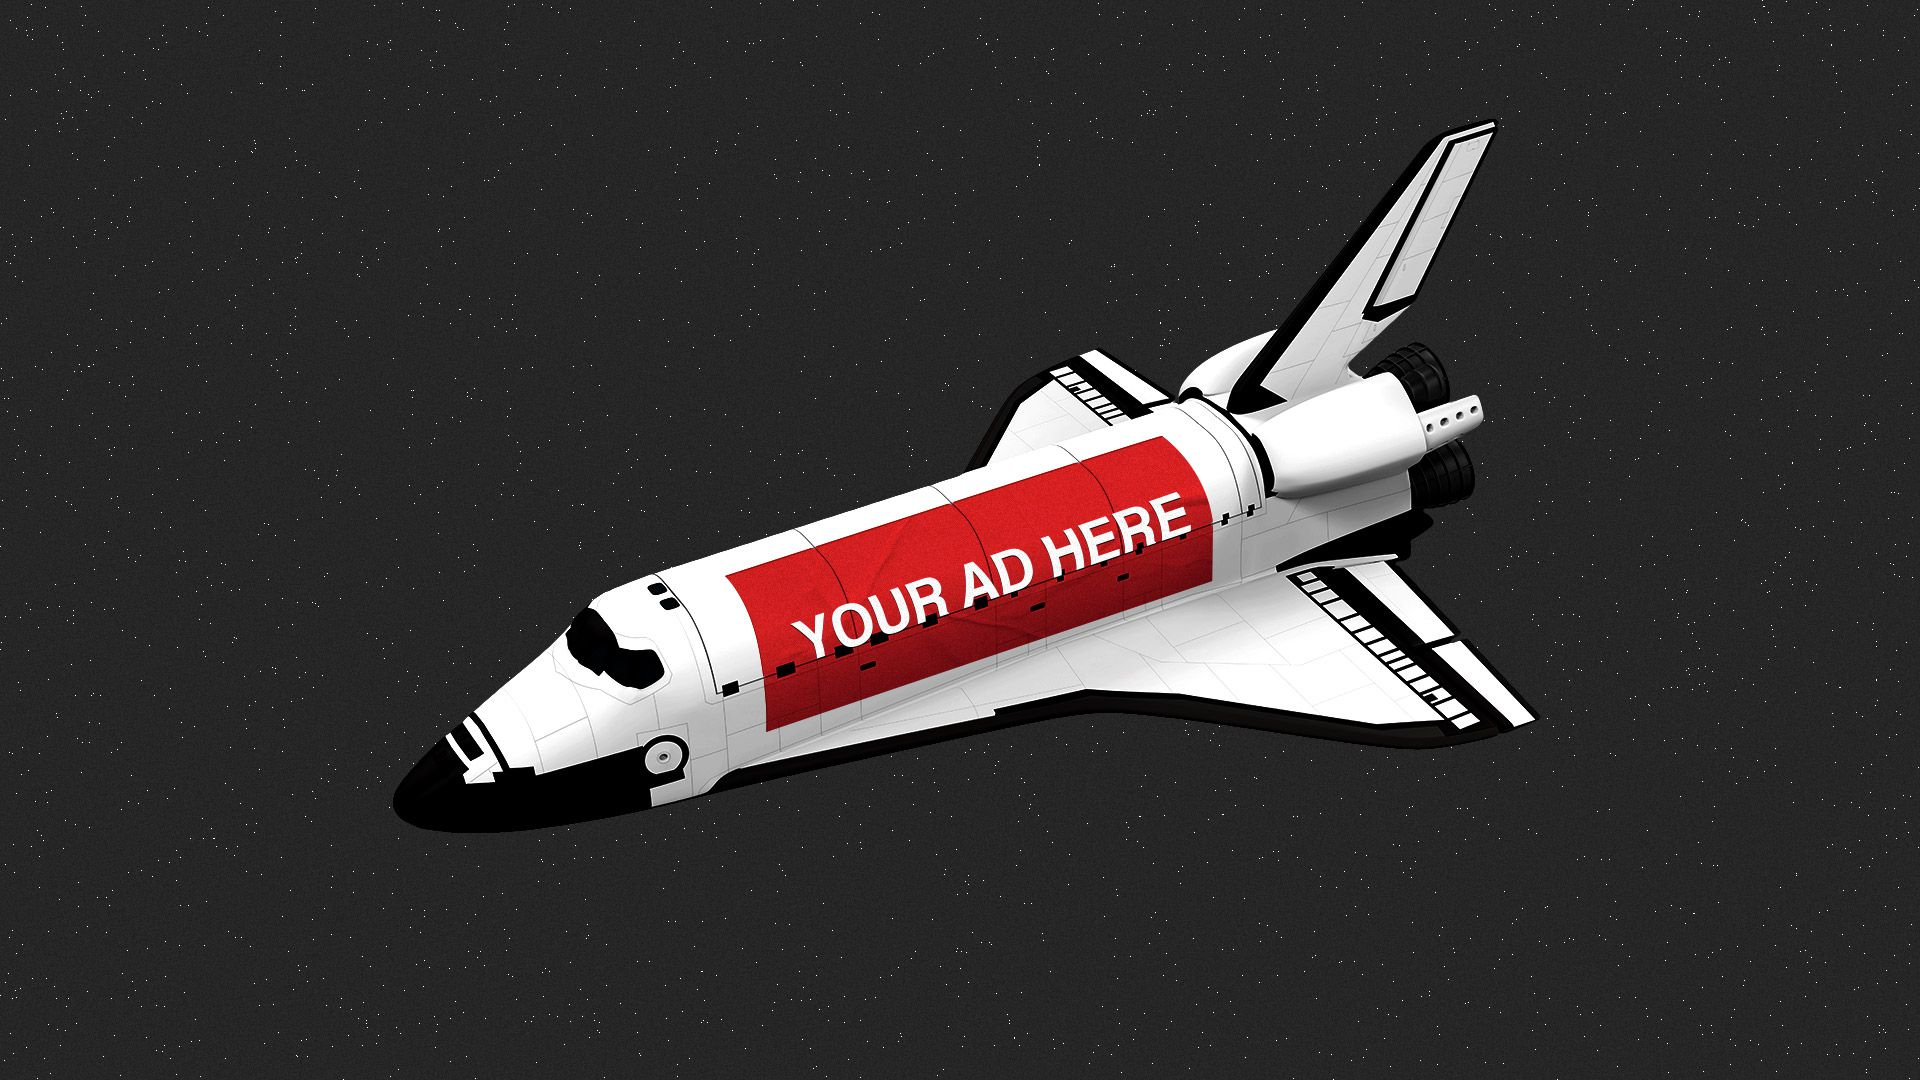 1 big thing: Space-age marketing